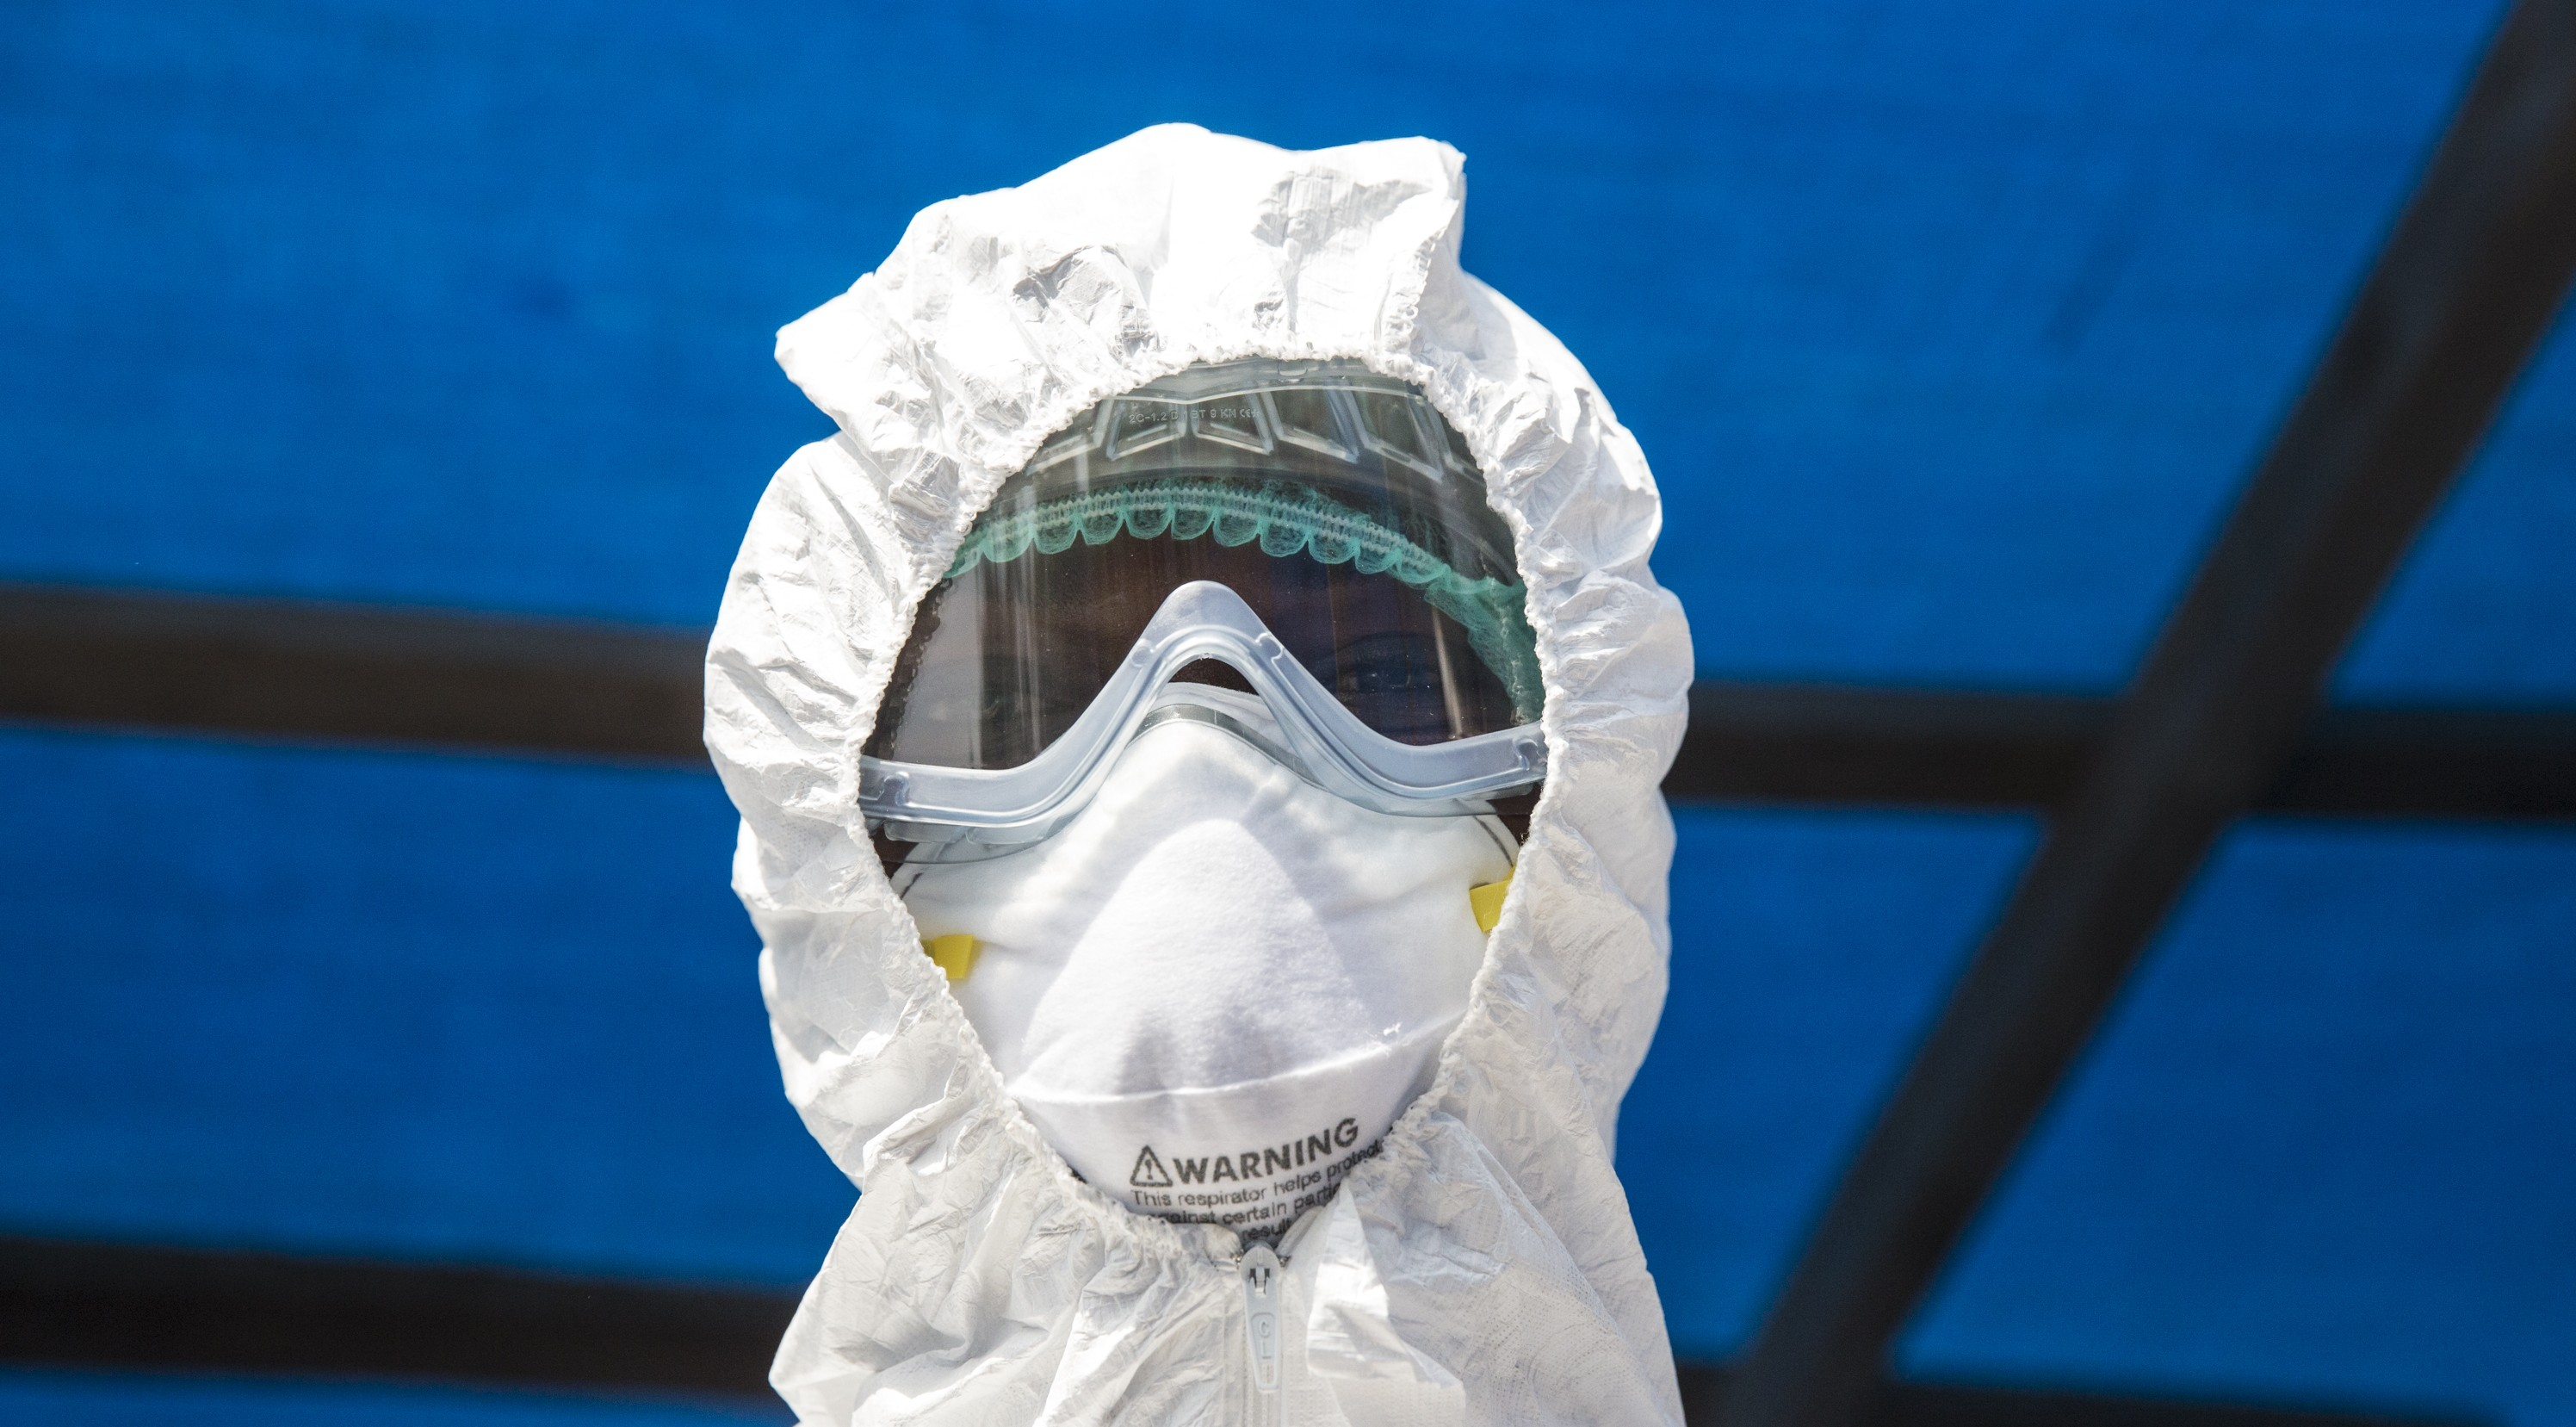 A lab technician is getting ready with his PPE to enter the Isolation ward of the government run hopital of Kabala, Sierra Leone to take blood sample from a suspected ebola case and will ensure the sample will either be flown by UN helicopter or driven to the capital as soon as possible. Photo by UNMEER/ Martine Perret. 18 December 2014